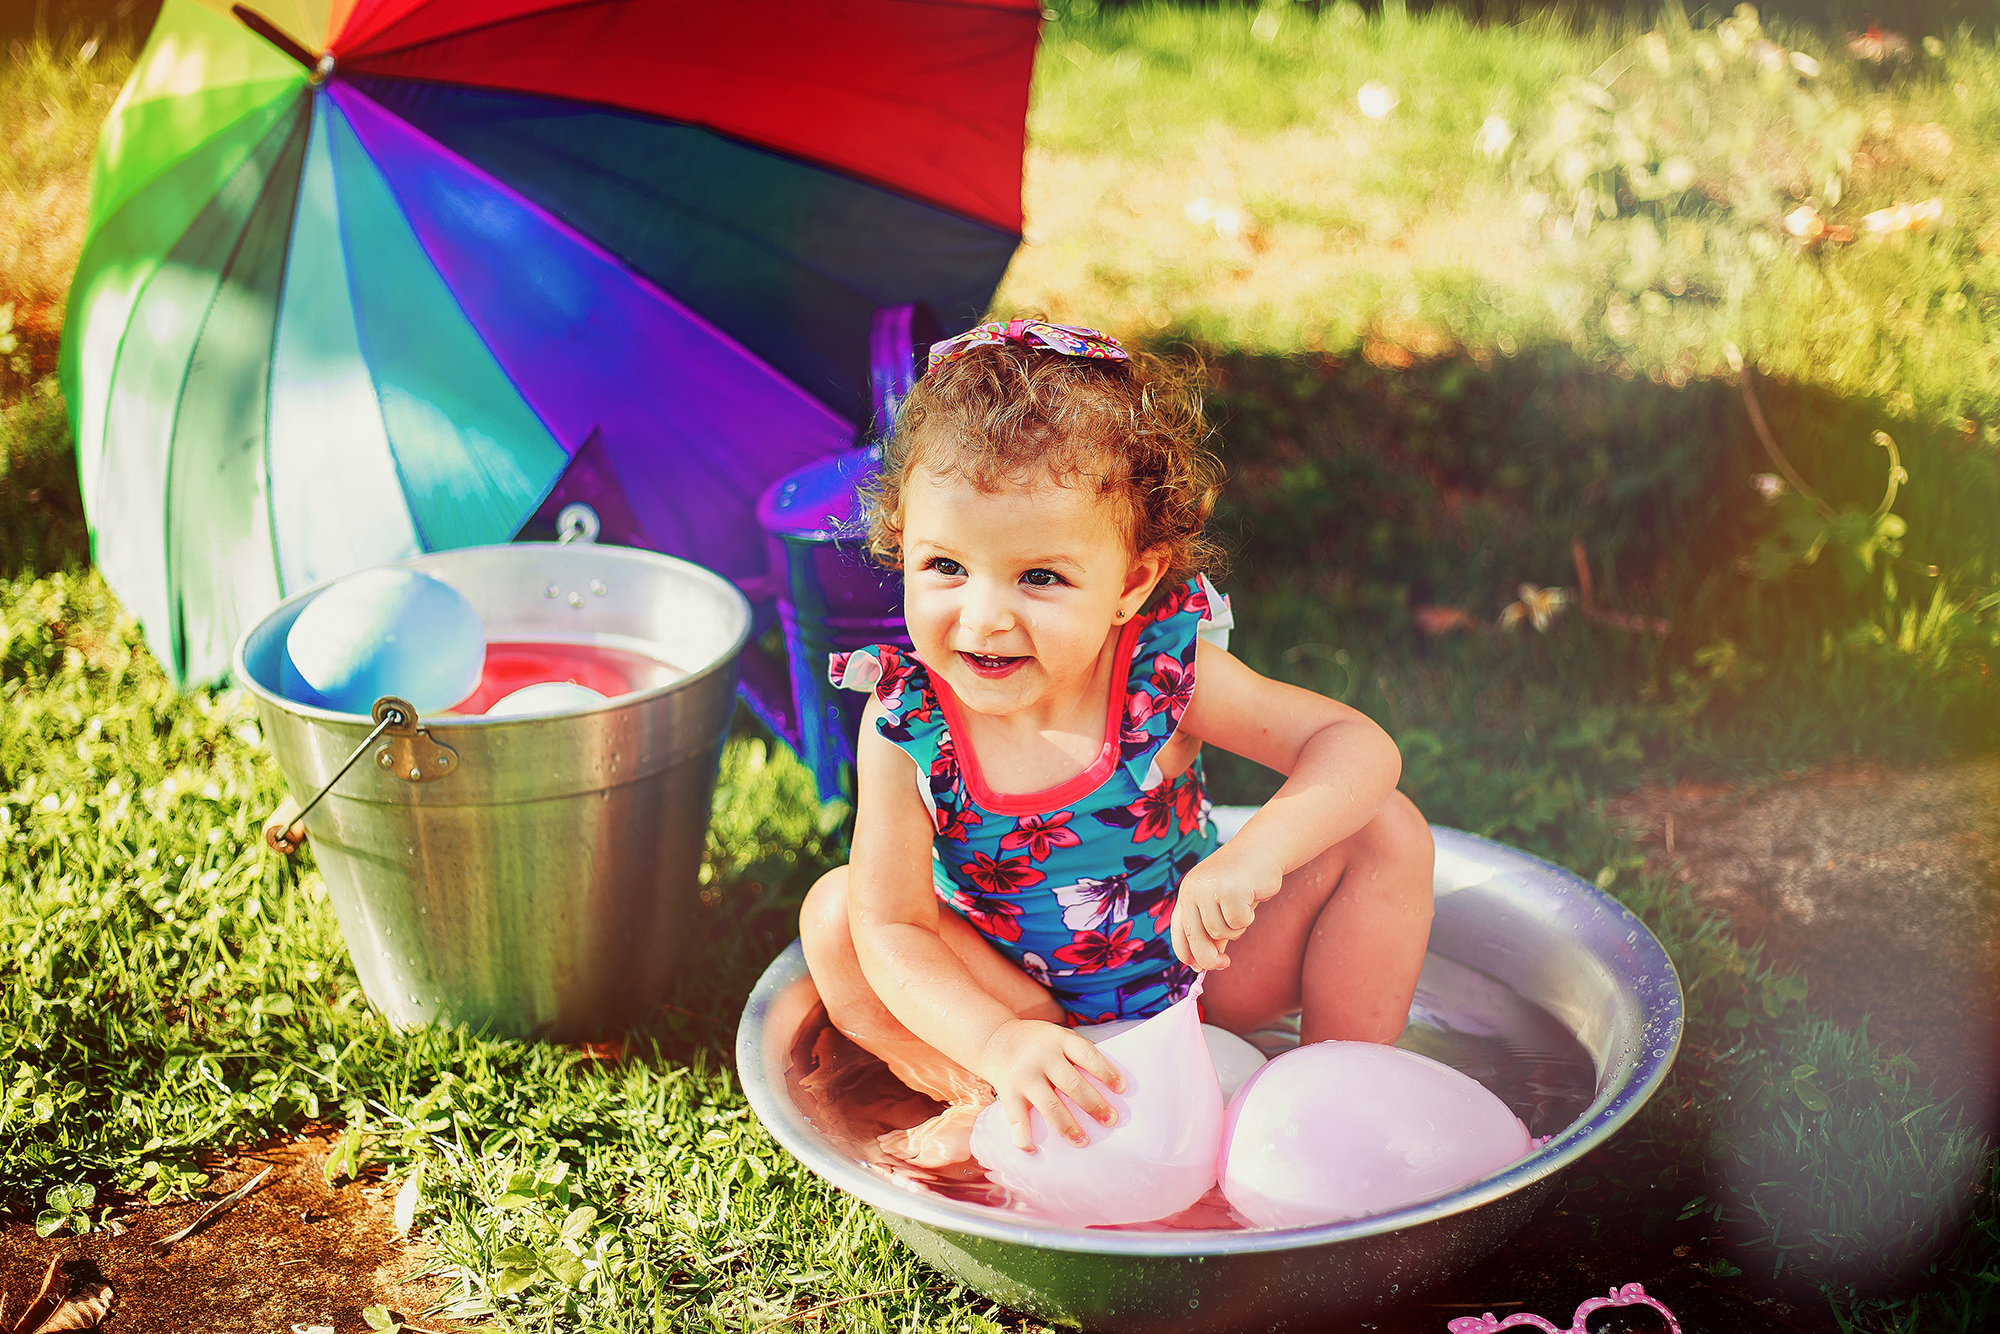 Little girl laughing playing in bucket with water ballons